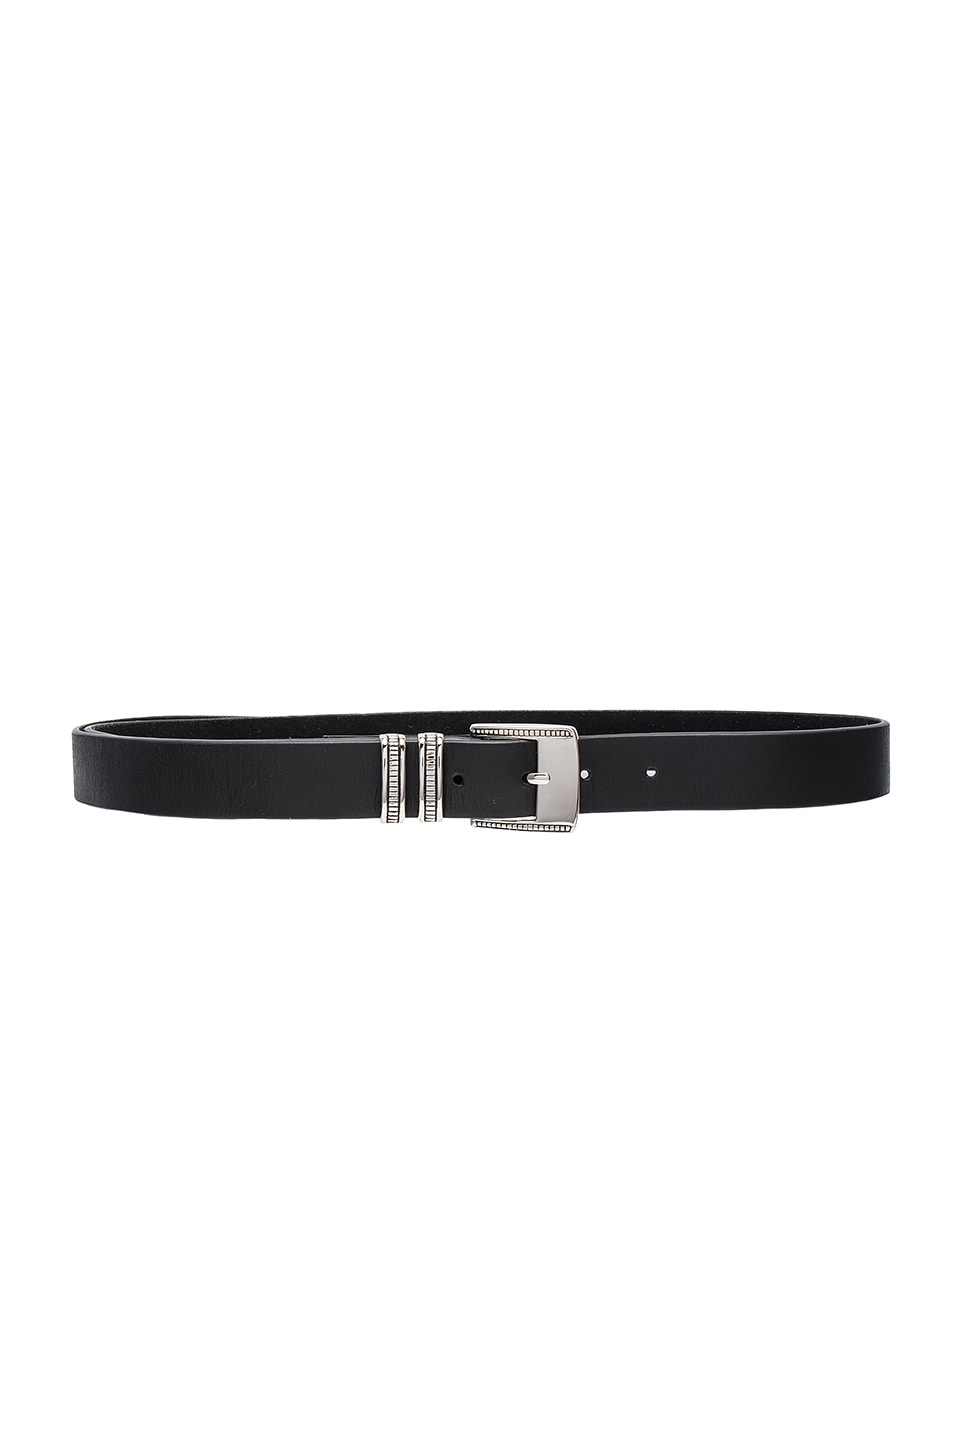 Lovestrength CEINTURE BERKELEY